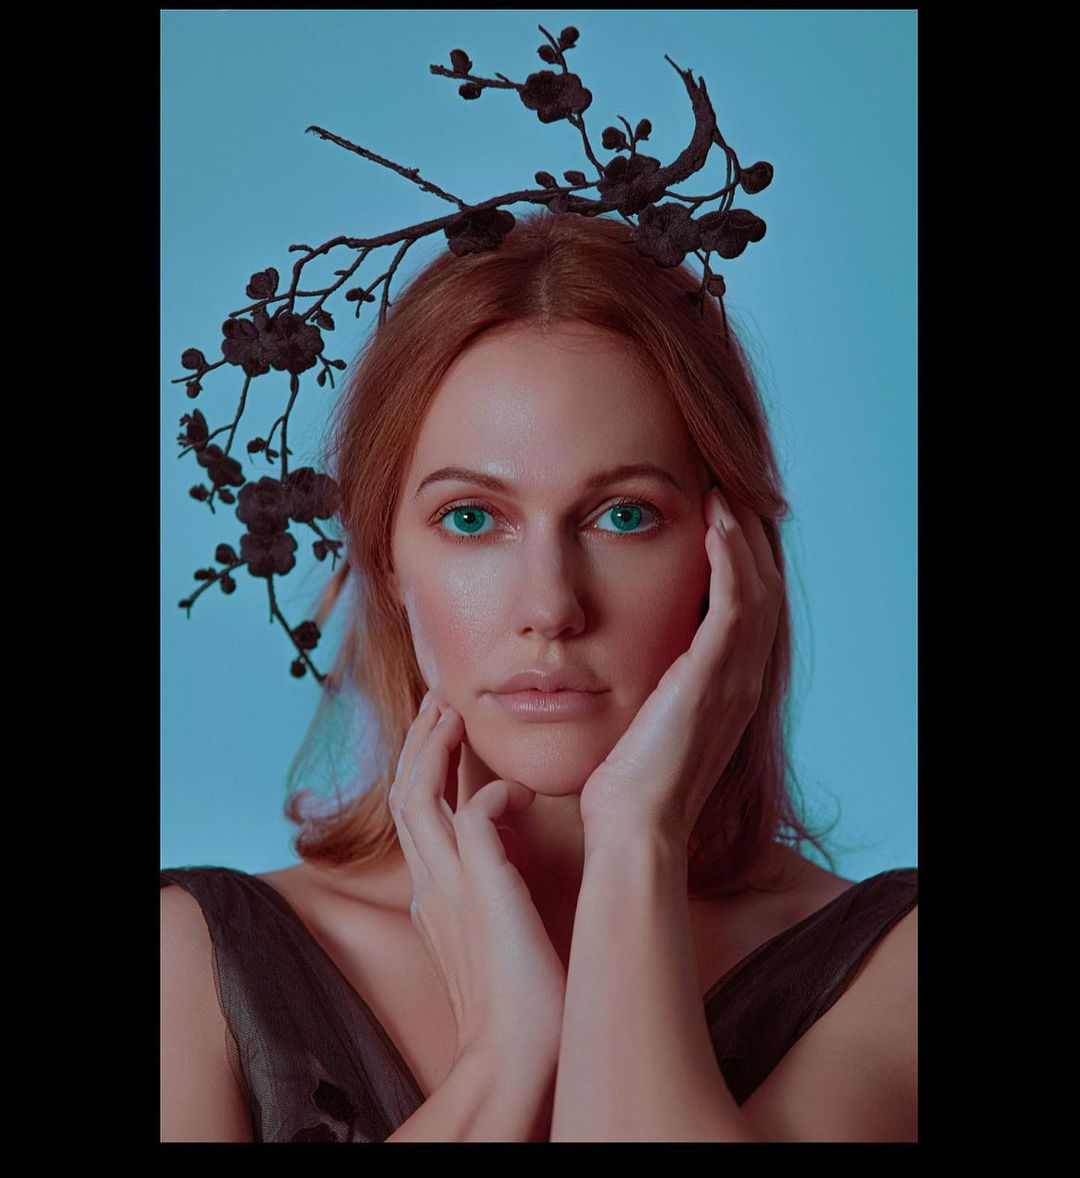 Meryem Uzerli shares her followers with her first hot look after her birth